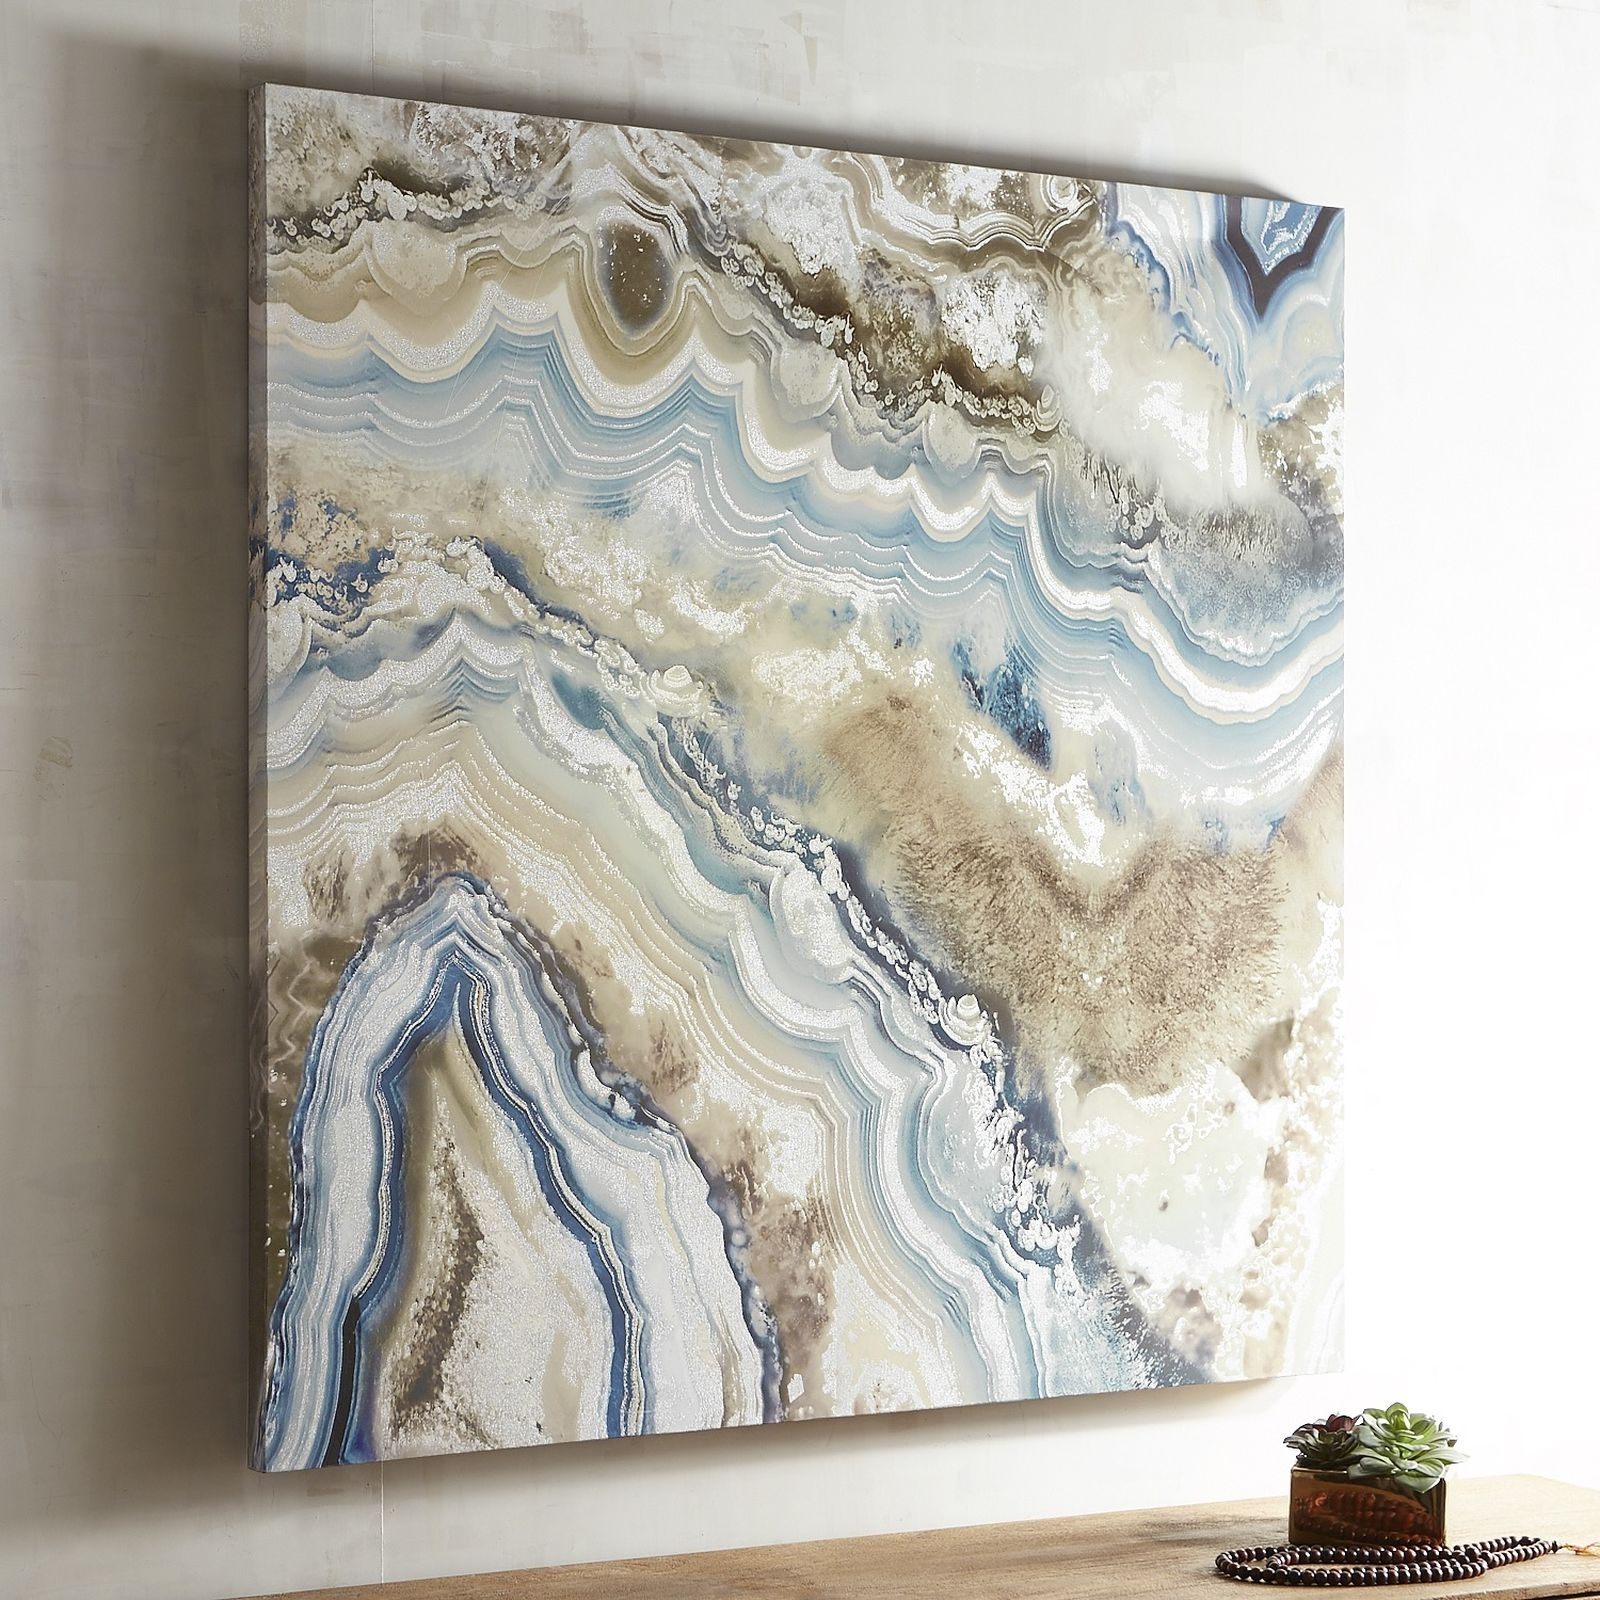 Agate Stones Are Characterizedthe Fineness Of Their Grain And Intended For Current Abstract Wall Art For Bedroom (View 5 of 21)